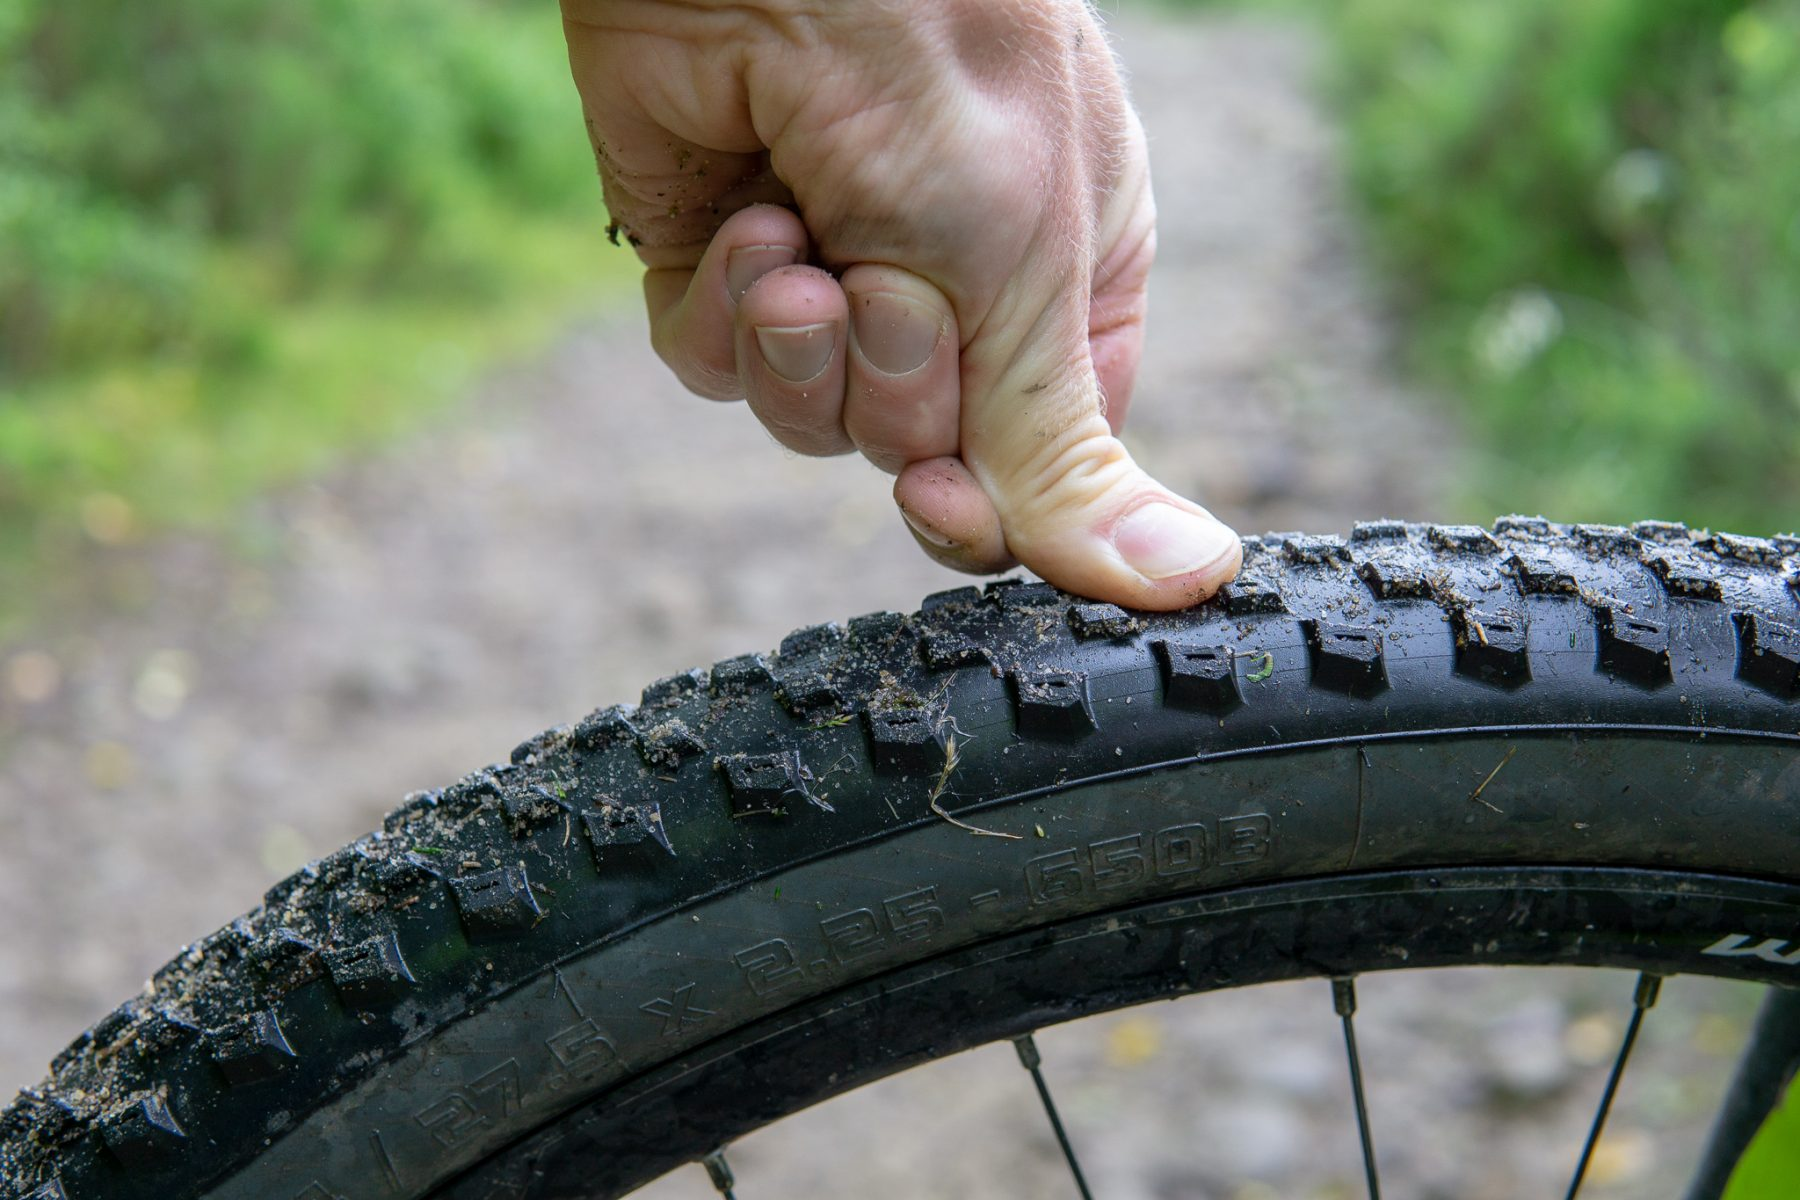 A low-tech pressure gauge tips for new mountain bikers